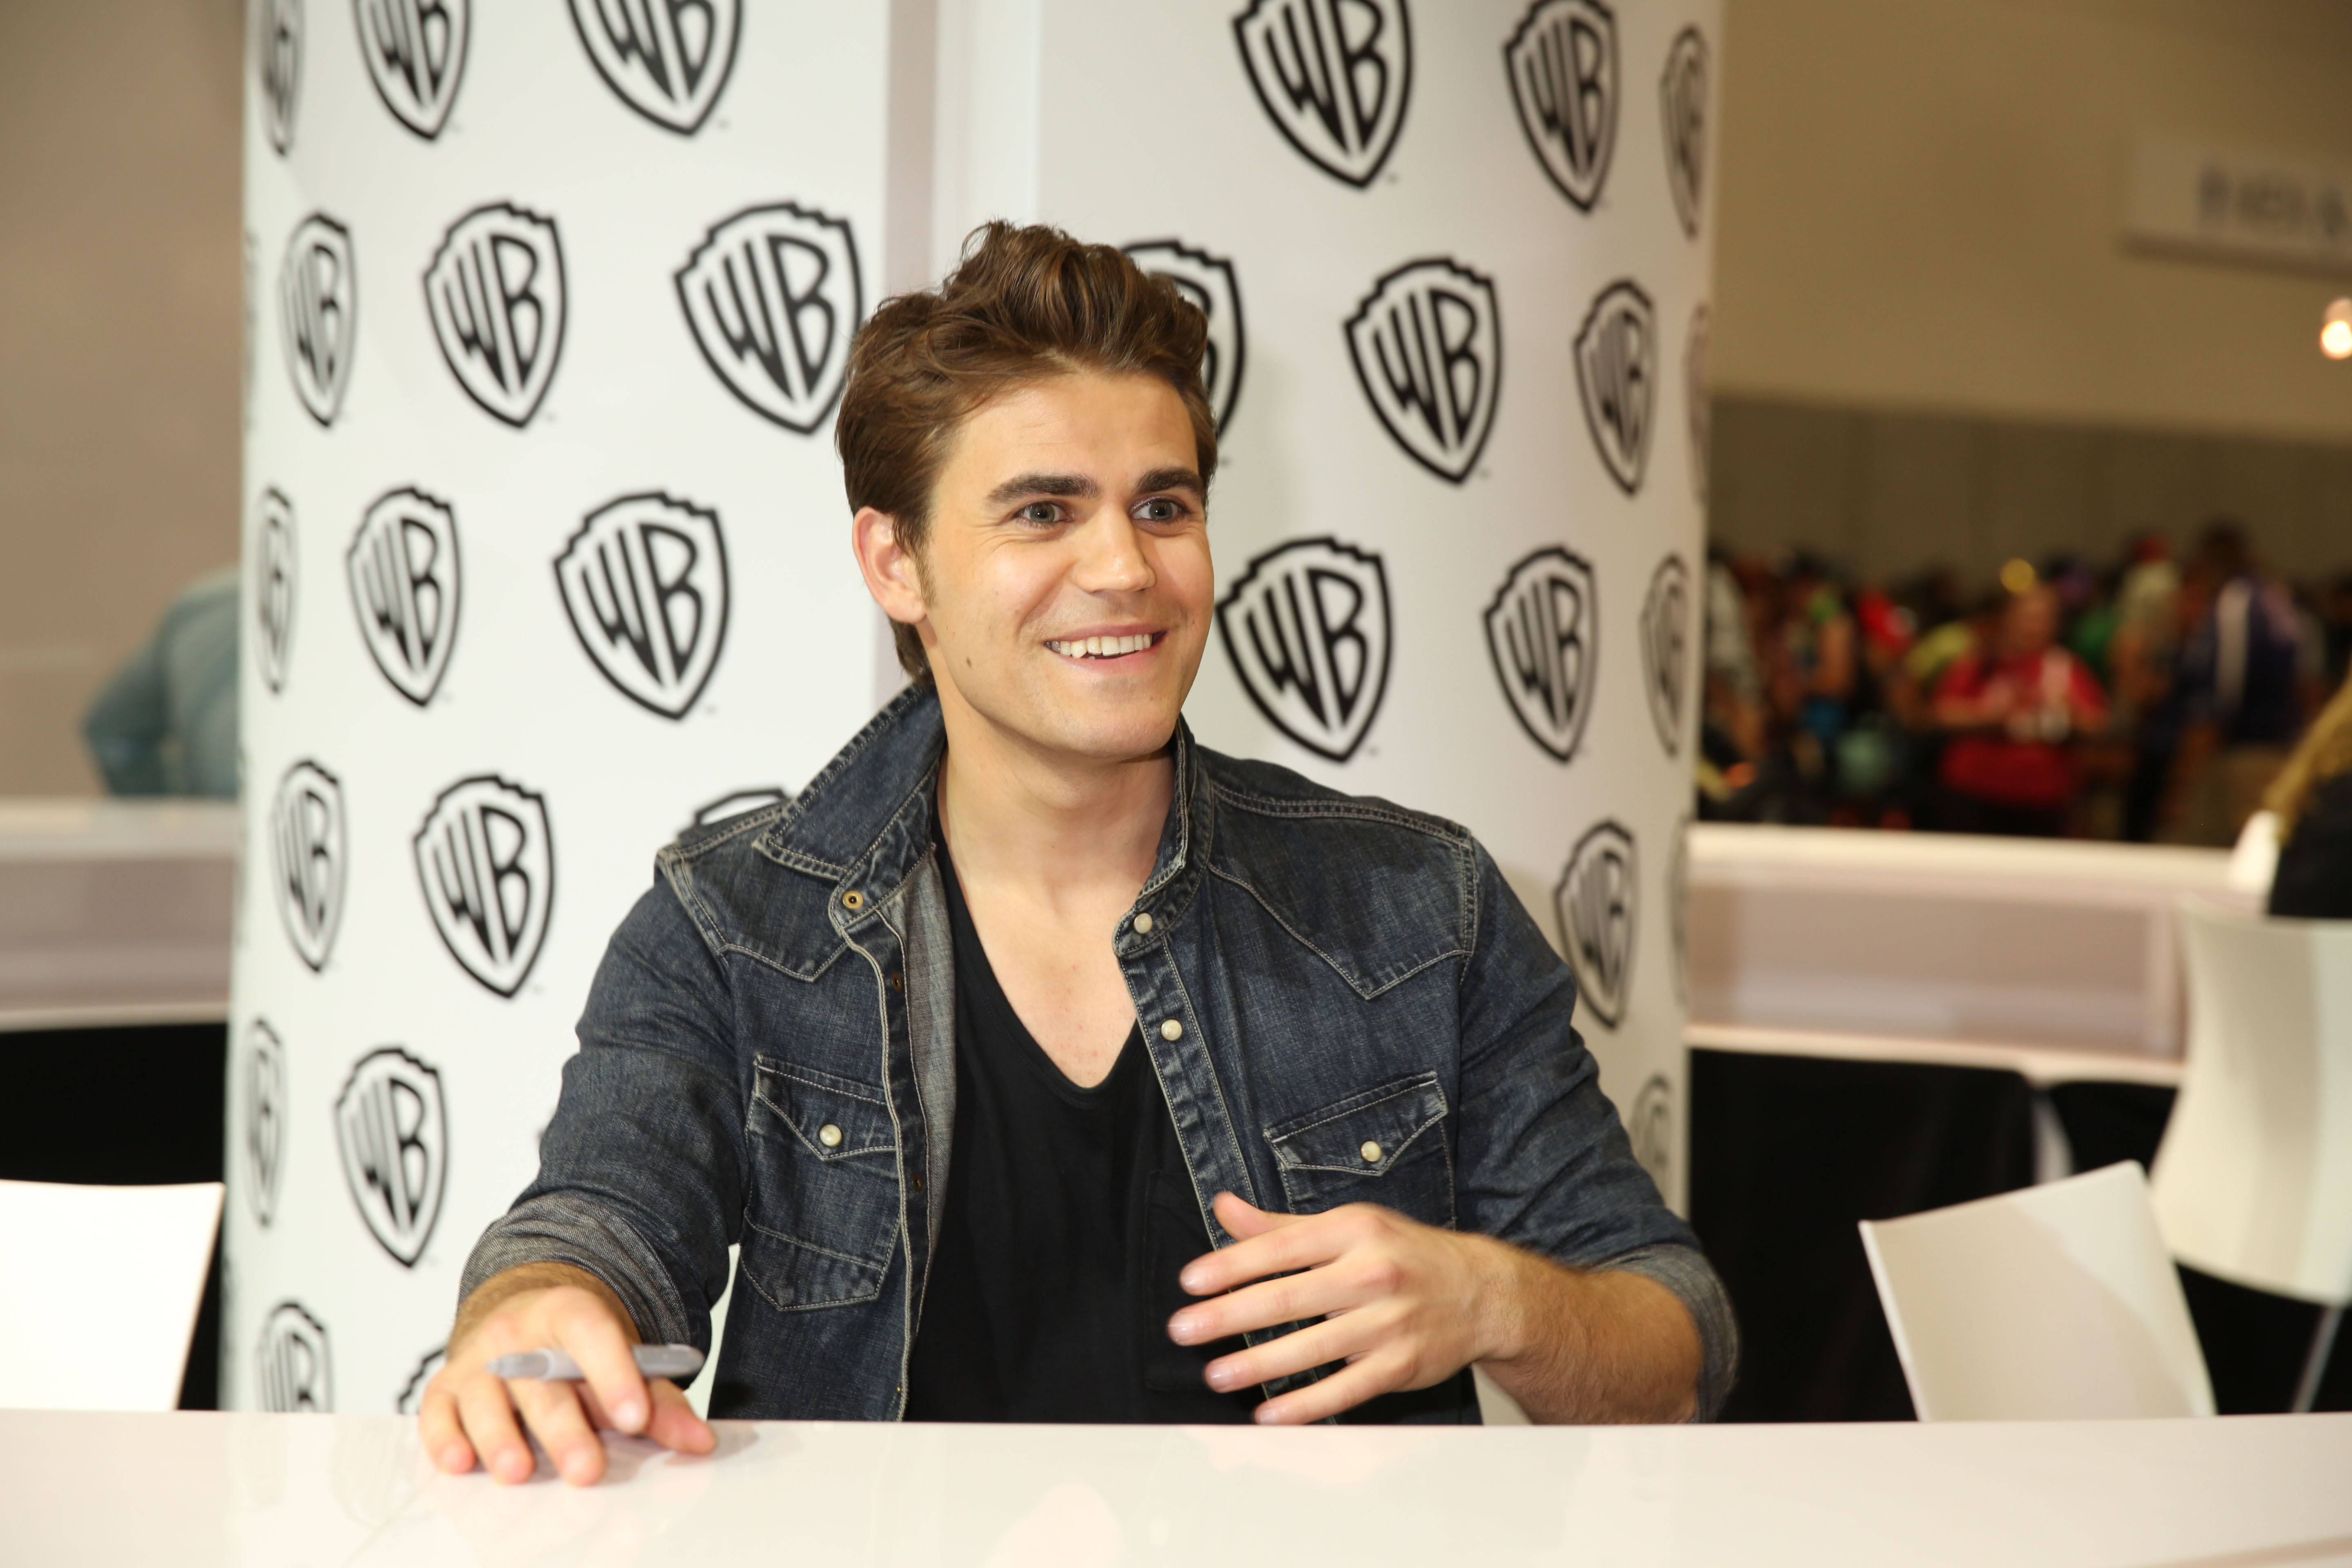 THE VAMPIRE DIARIES at Comic-Con